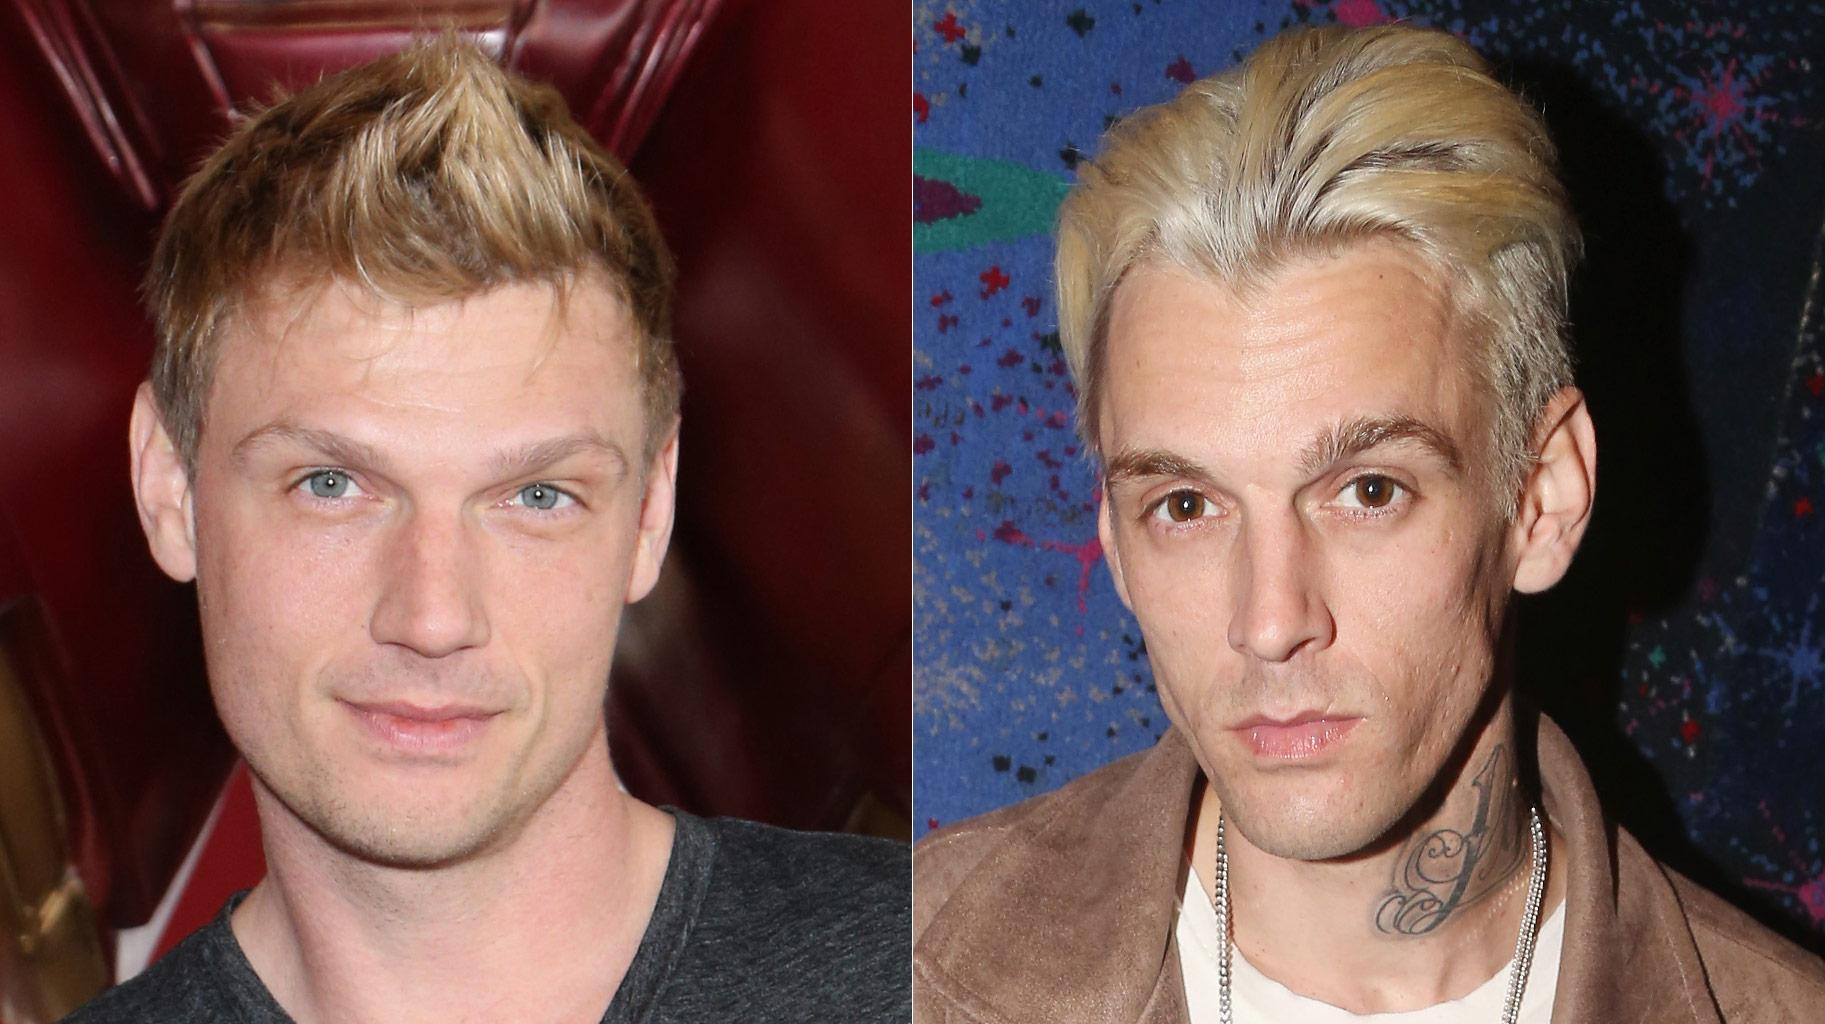 Nick Carter 'Upset And Hurt' He Had To Get Restraining Order Against His Brother Aaron - Here's Why He Just Had To do It!